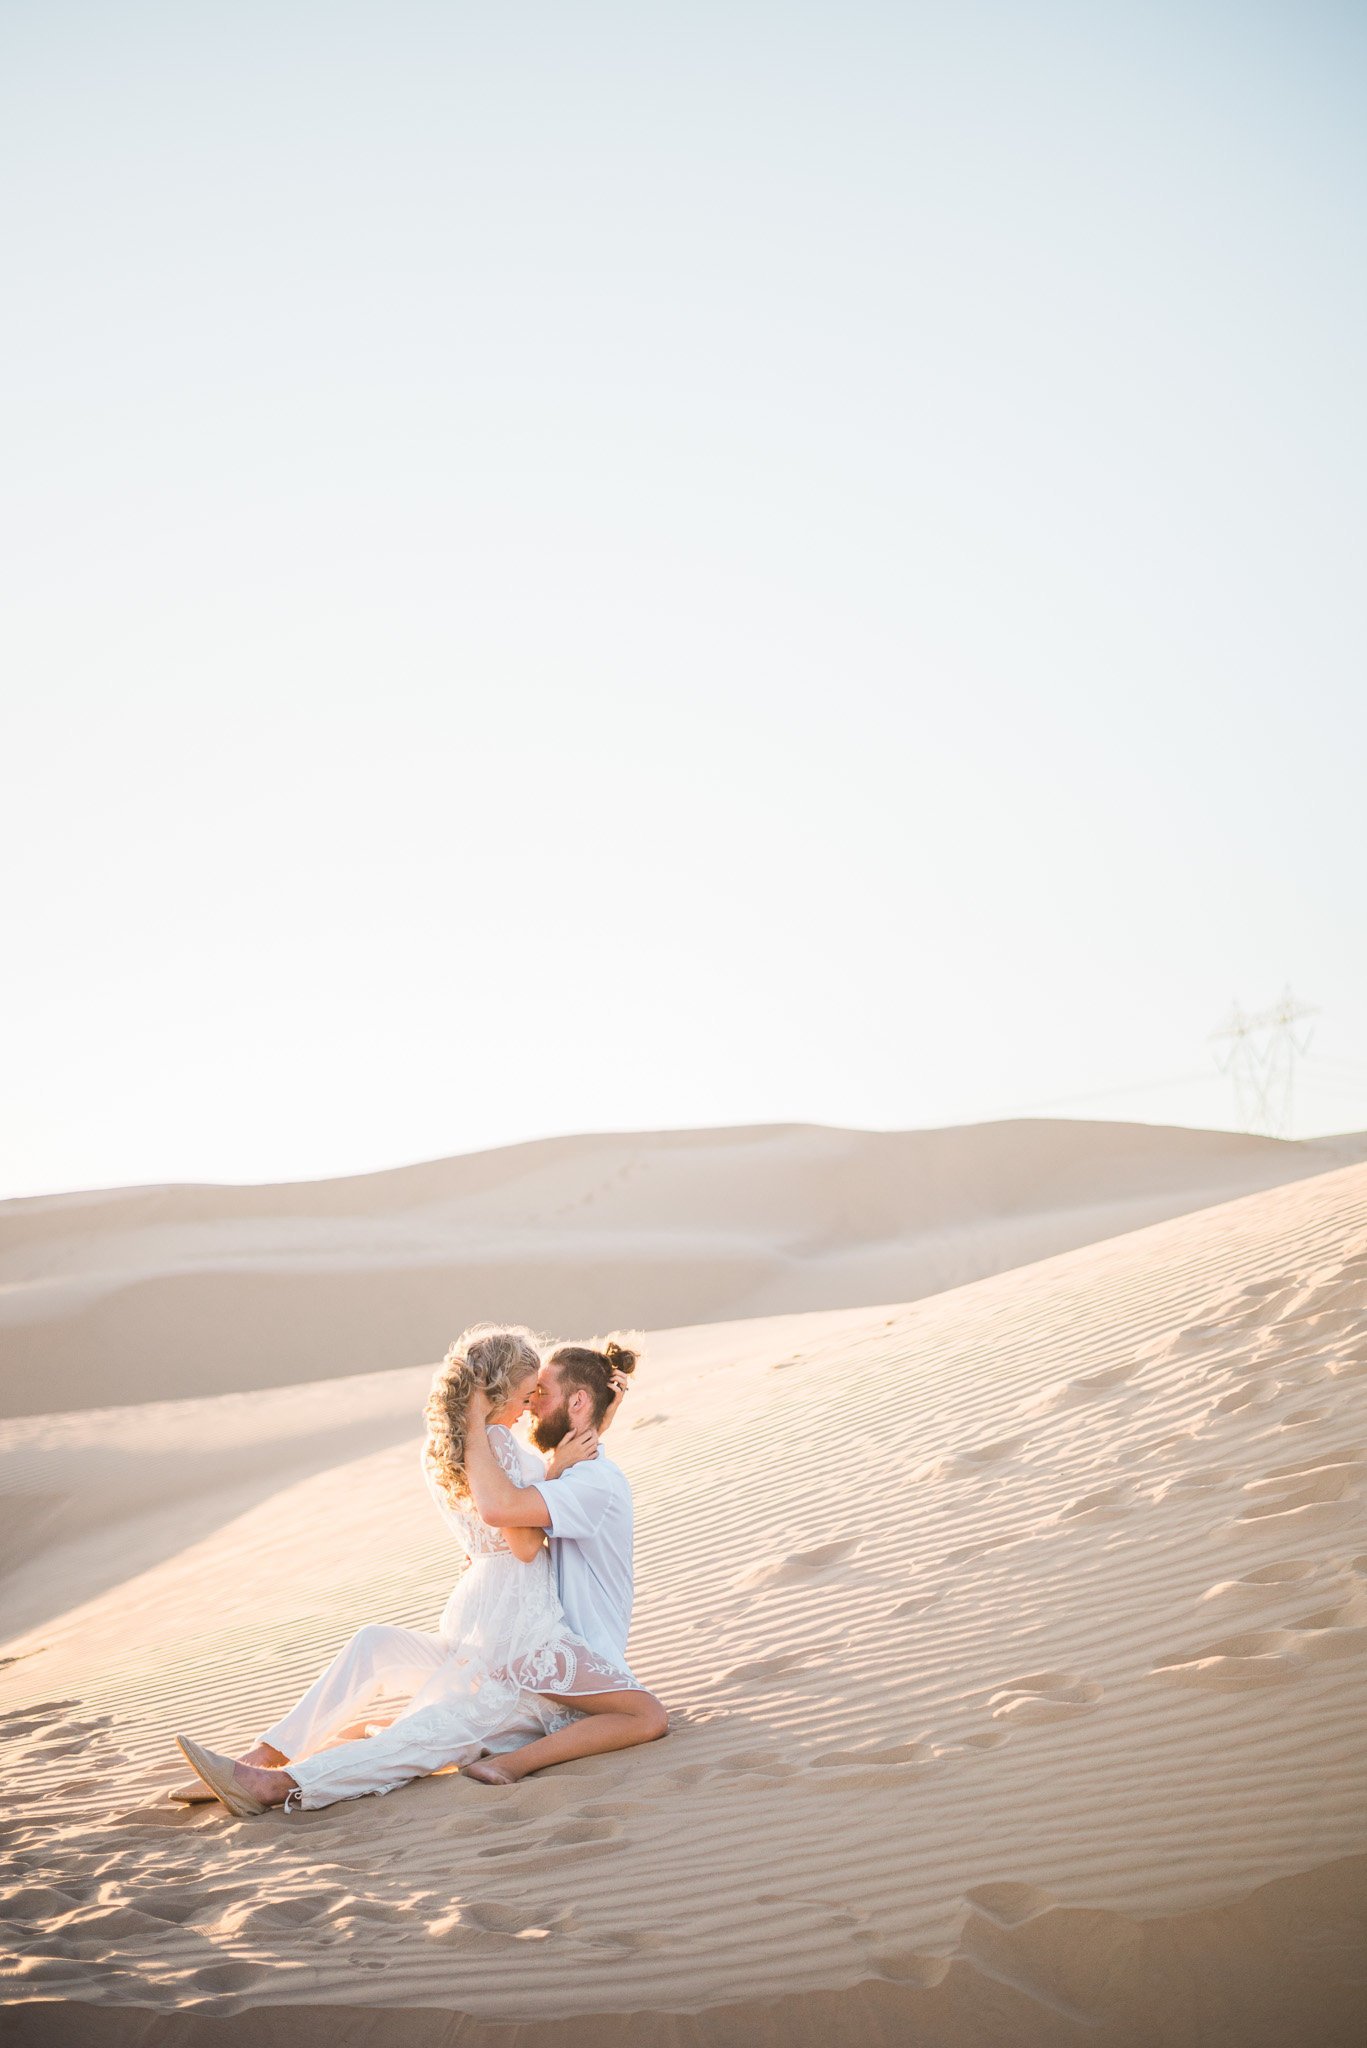 Glamis Sand Dunes Boho Engagement Session Photo of Couple Sitting in Sand | Tucson Wedding Photographer | West End Photography